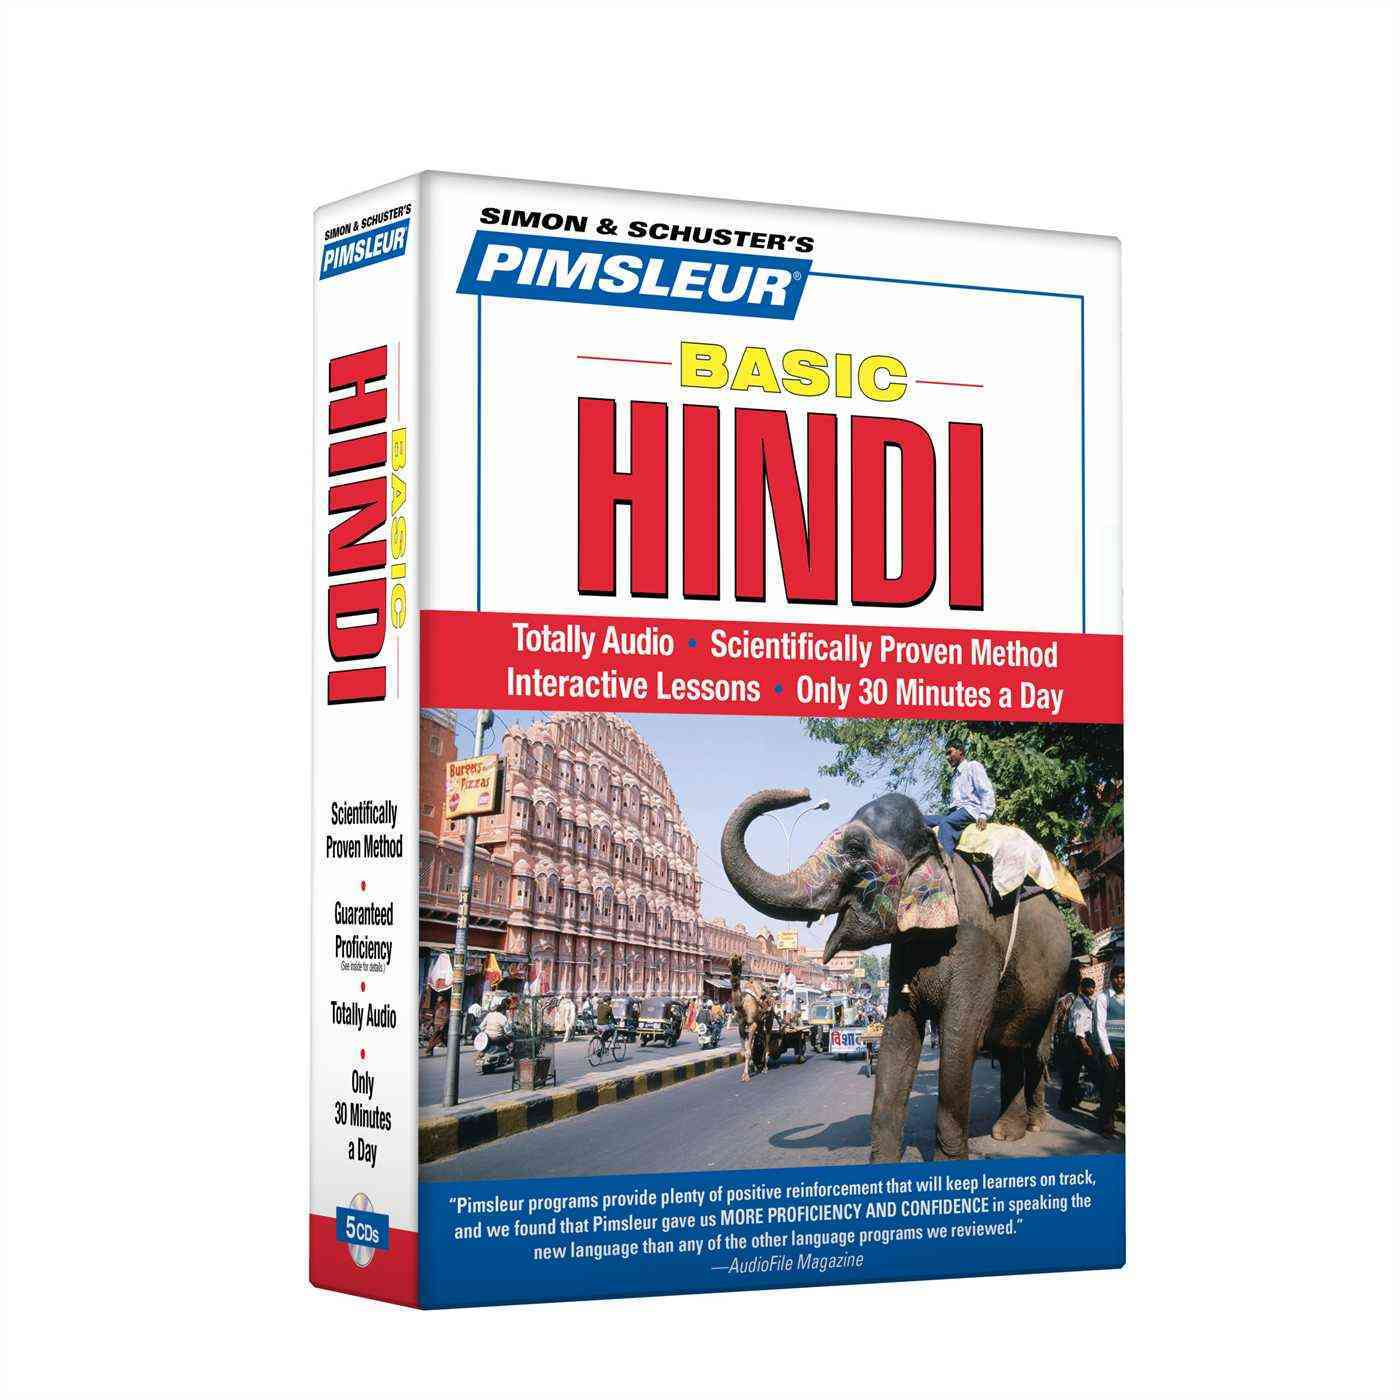 [CD] Pimsleur Basic Hindi